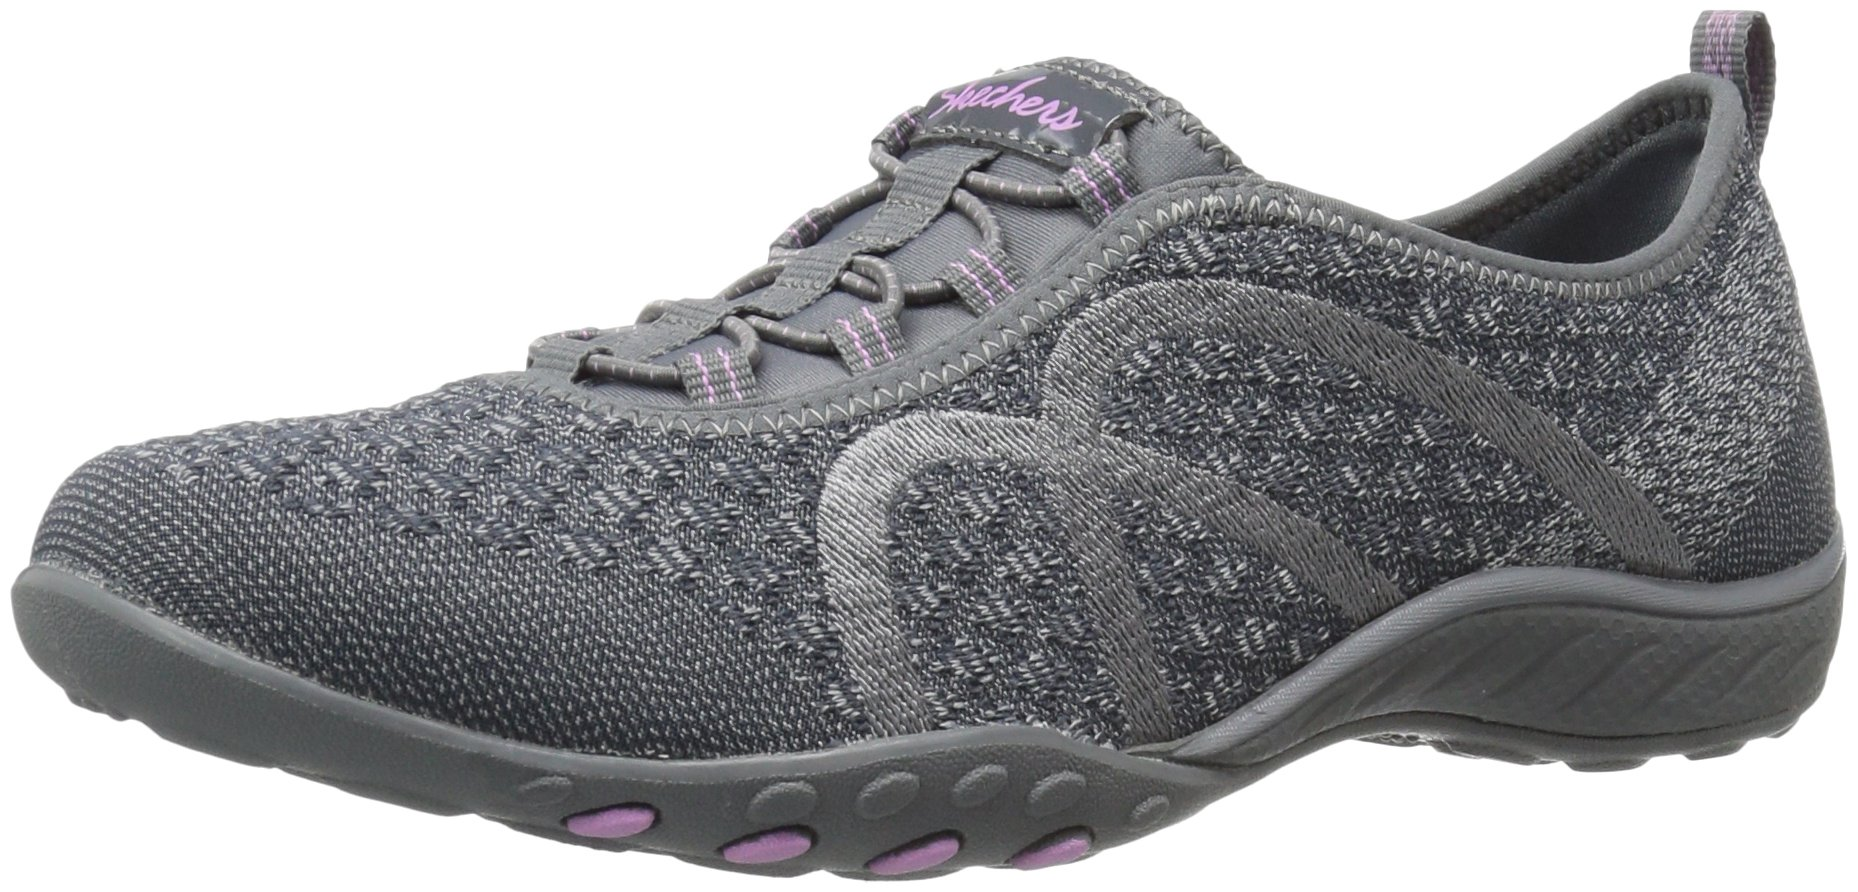 Skechers Sport Women's Breathe Easy Fortune Fashion Sneaker,Charcoal Knit,5.5 M US